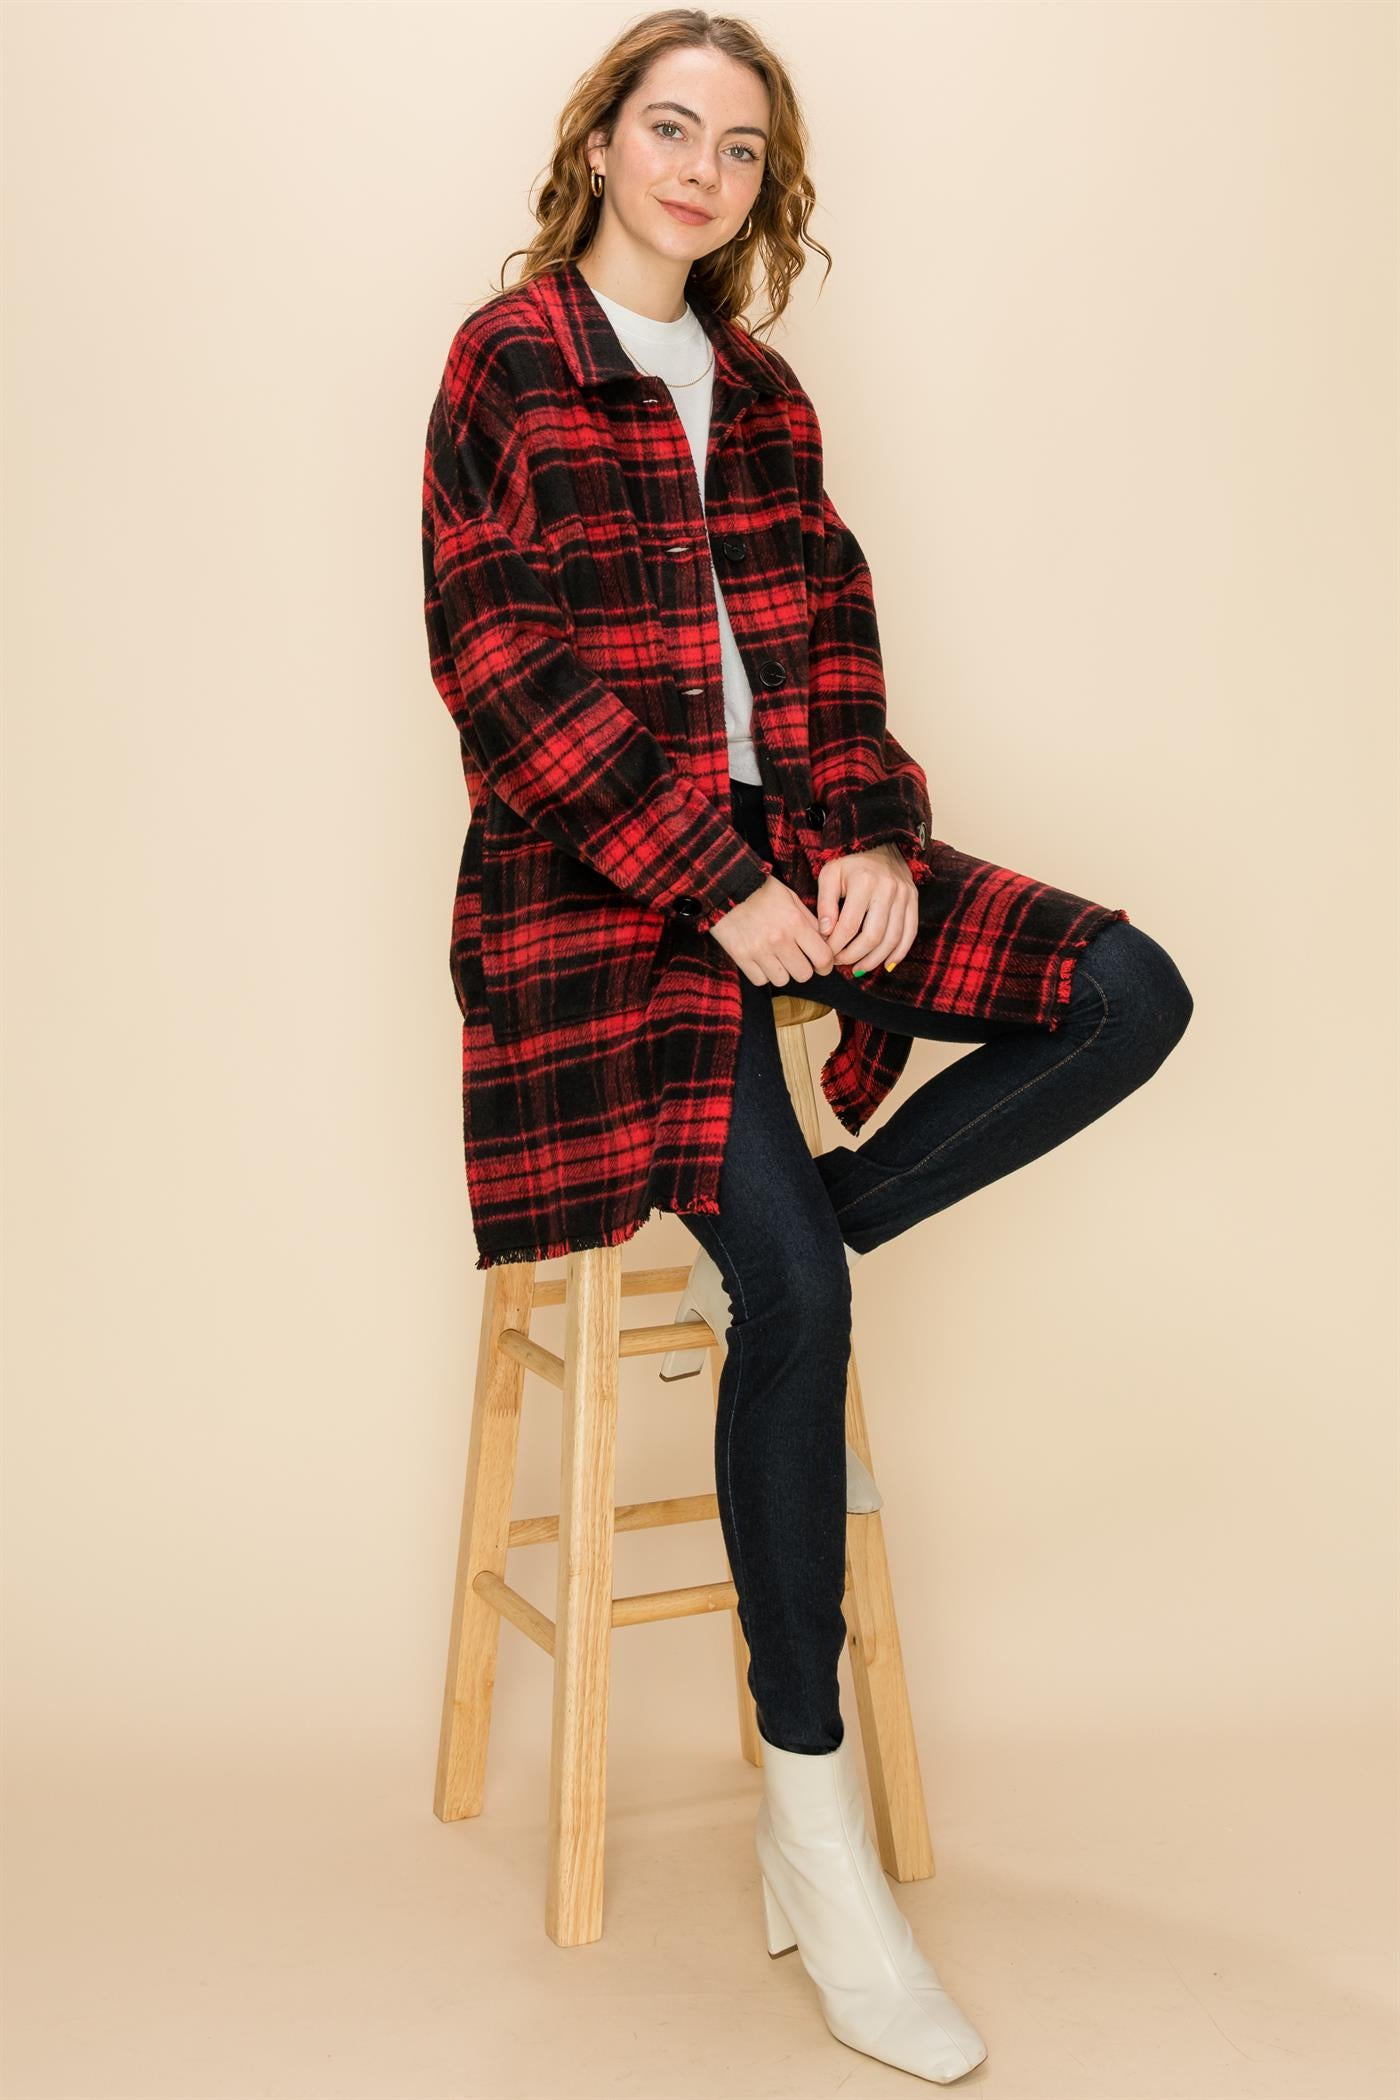 Long Black/Red Plaid Jacket